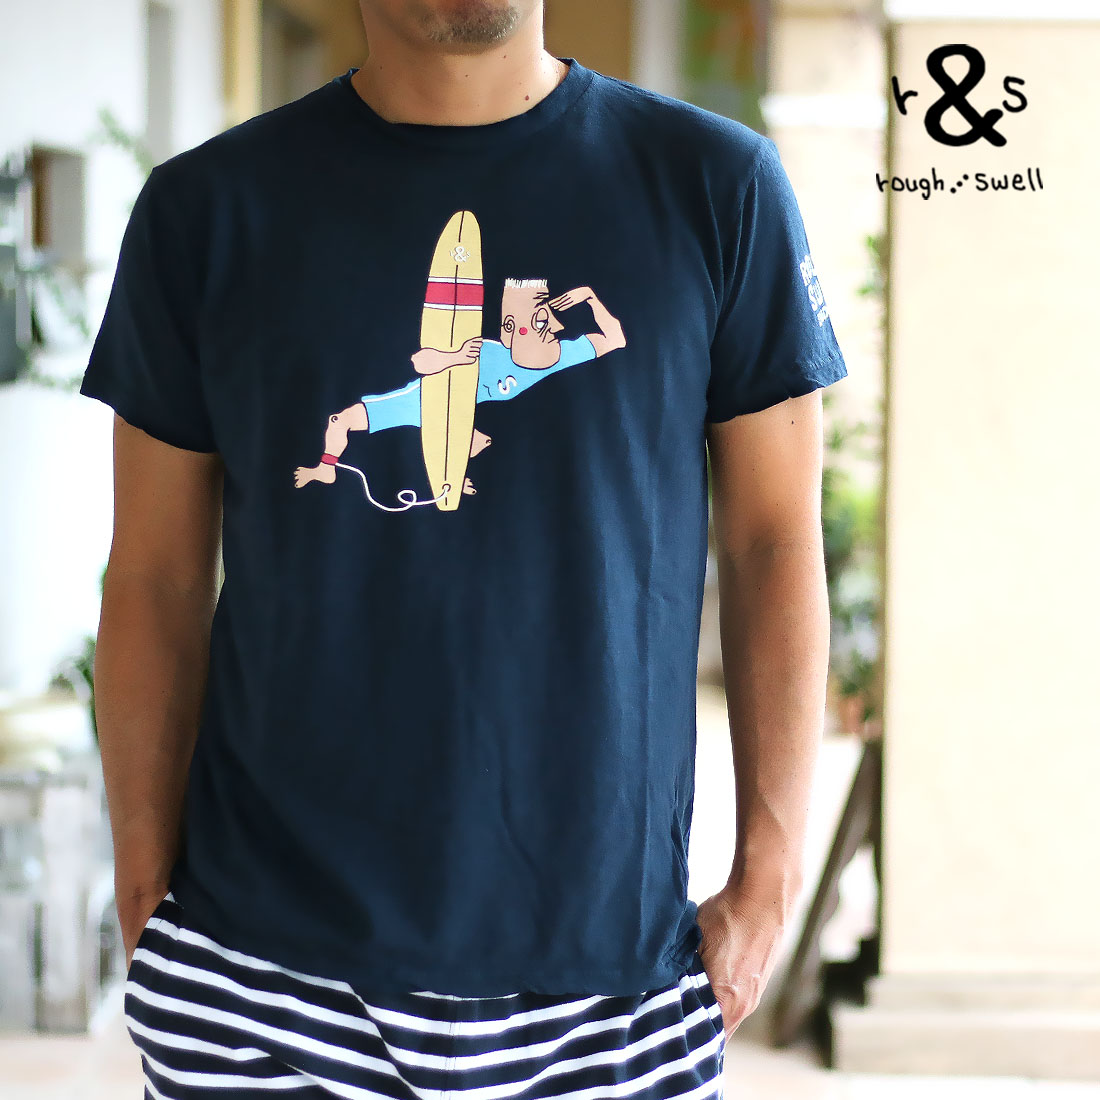 rough&swell ラフ&スウェル 【送料無料】 UNCLE SURF TEE(S M L XL)半袖Tシャツ メール便不可 RSM-19107